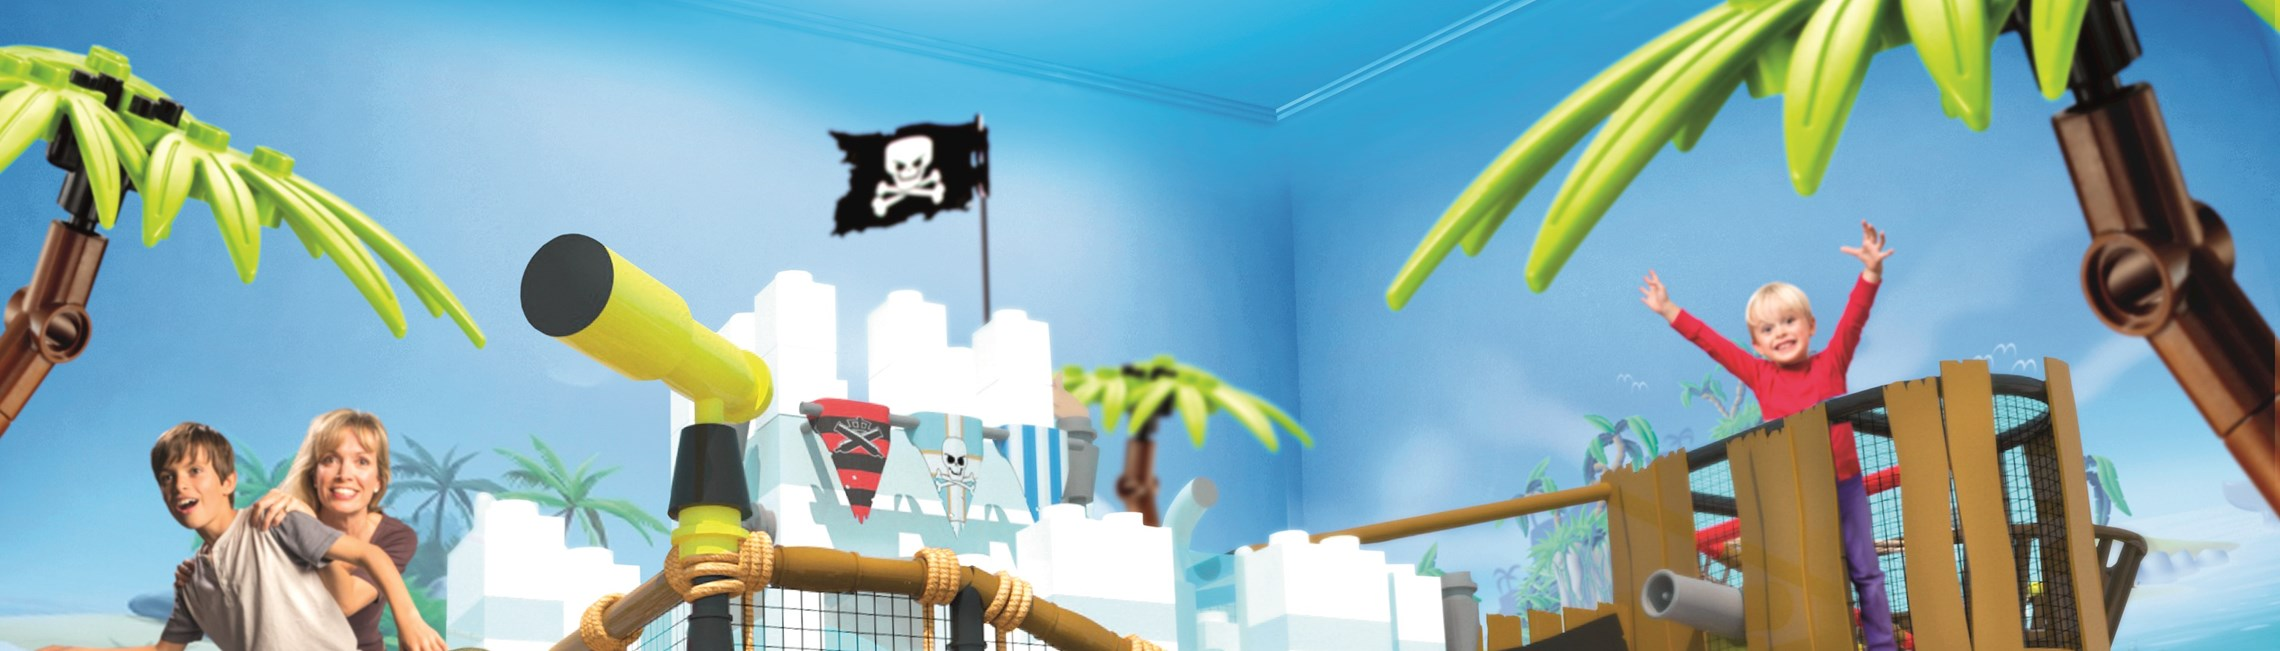 Pirate Adventure Land | LEGOLAND Discovery Center